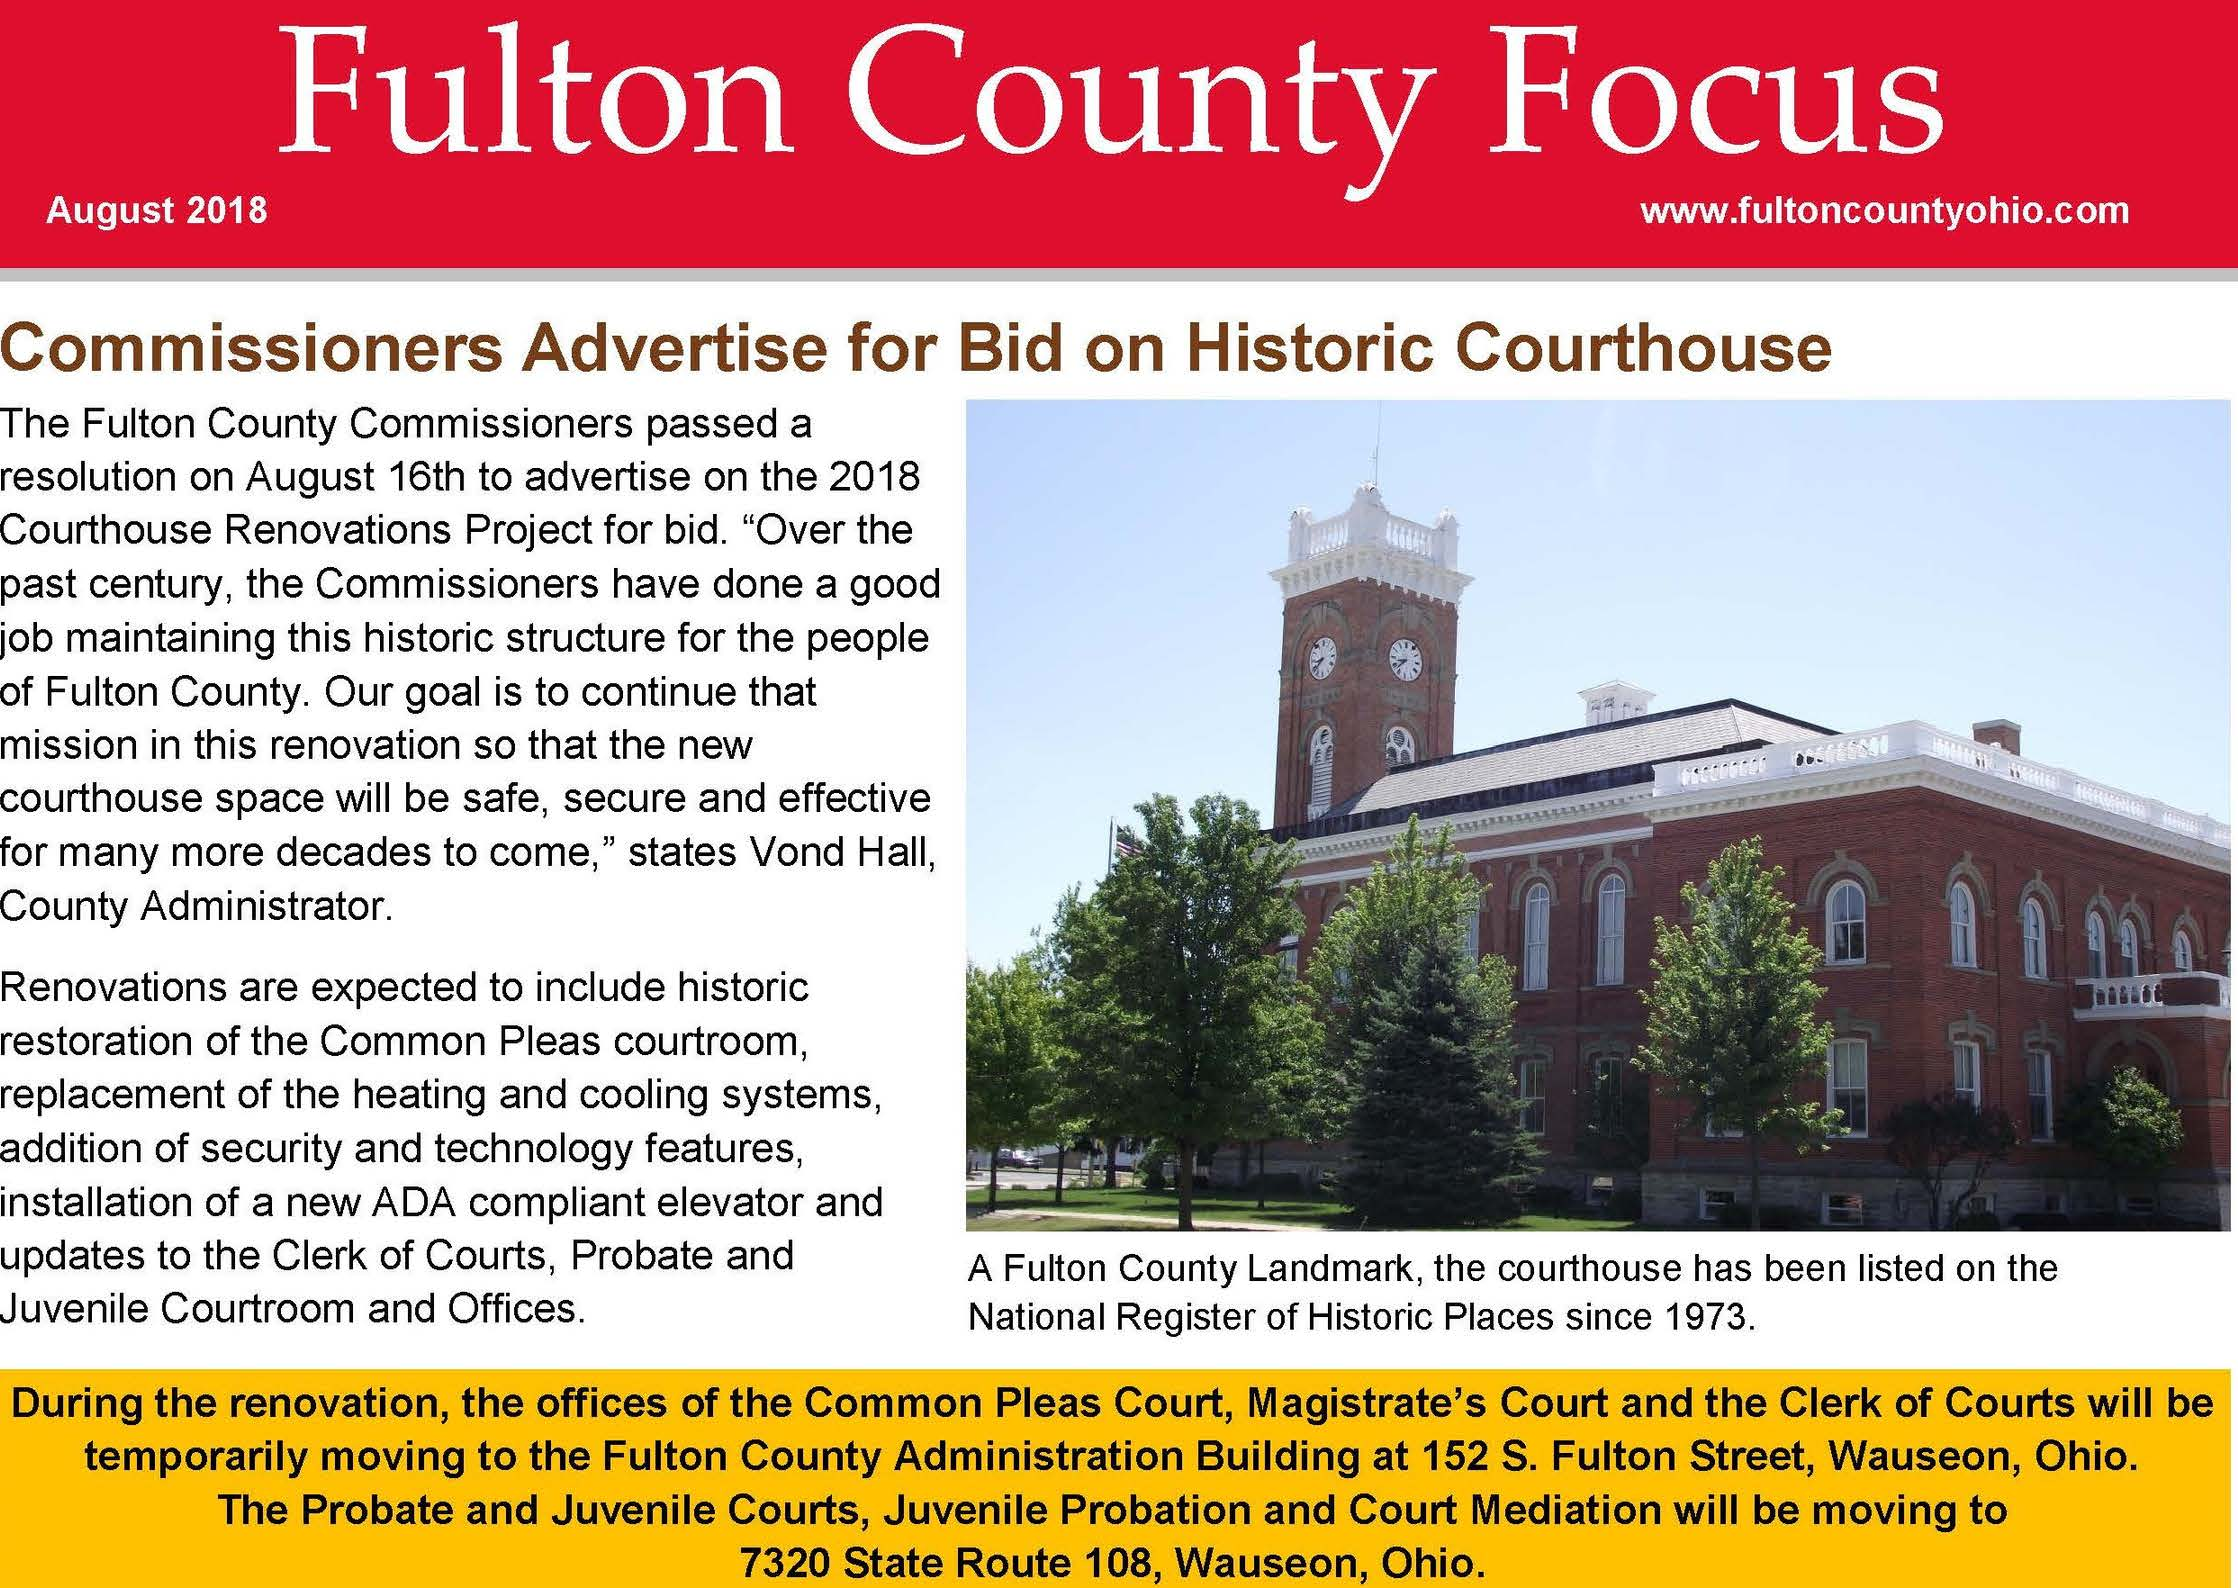 Image for the August 2018 Fulton County Focus